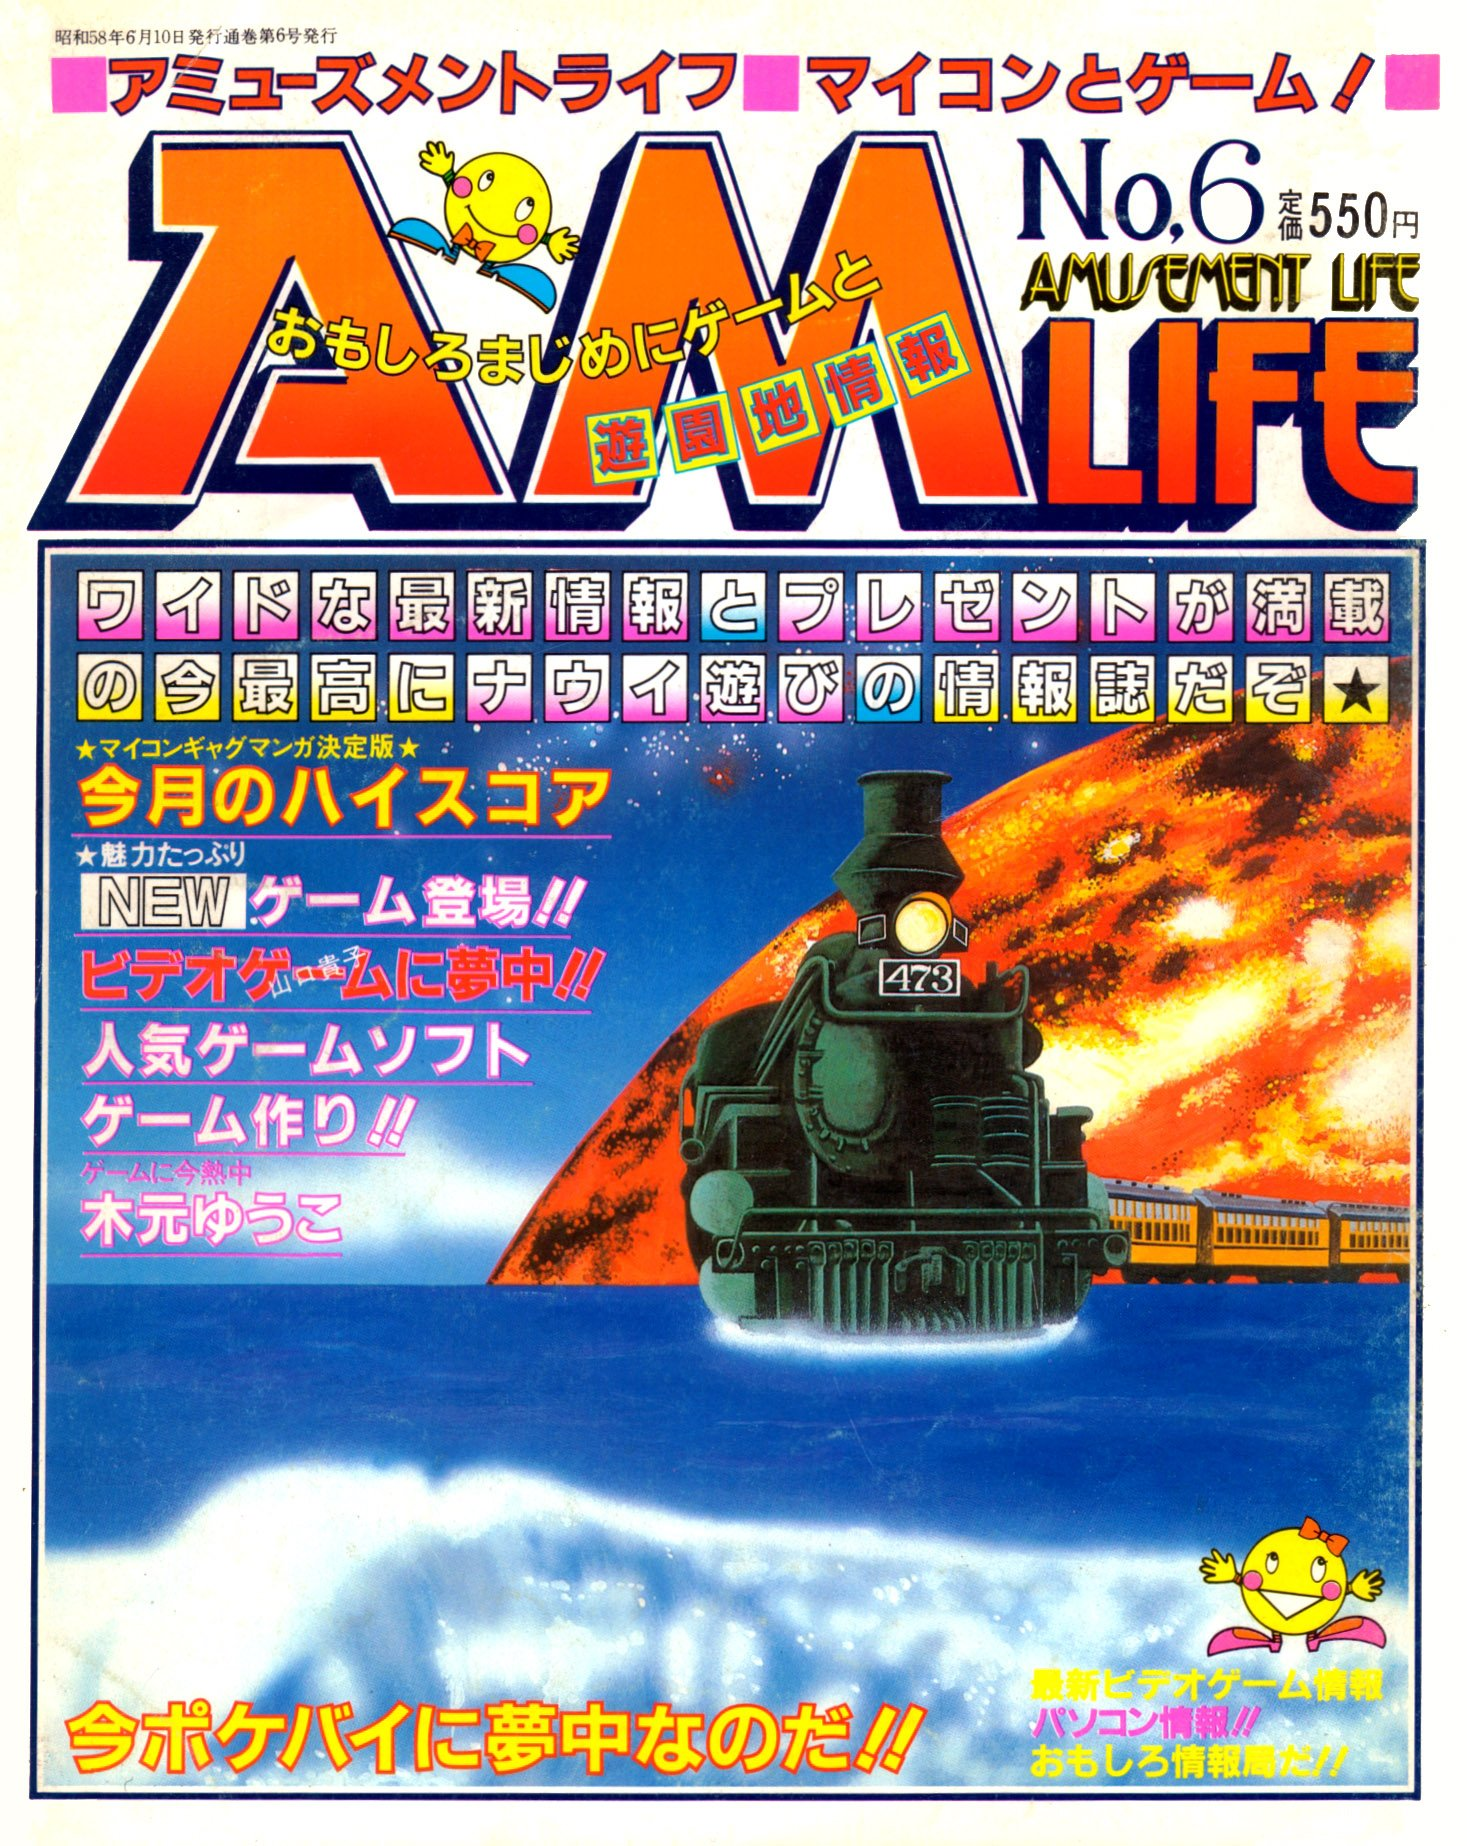 Amusement Life Issue 06 (June 1983)